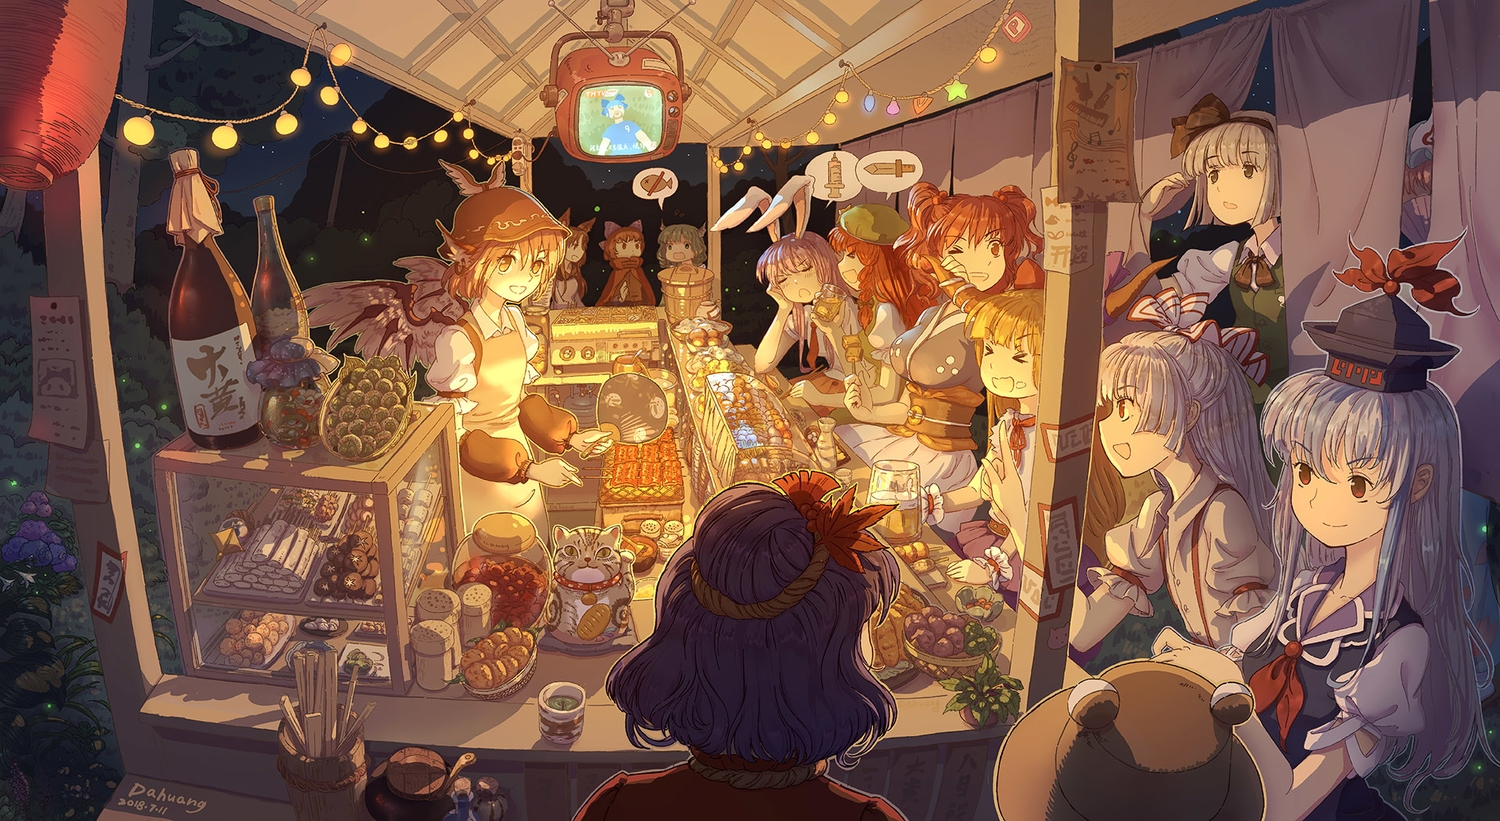 animal_ears apron blonde_hair braids breasts brown_hair bunny_ears bunnygirl cape cirno dahuang drink fan flat_chest food fujiwara_no_mokou gray_hair green_eyes green_hair group hat headband hong_meiling horns ibuki_suika imaizumi_kagerou japanese_clothes jpeg_artifacts kamishirasawa_keine konpaku_youmu long_hair moriya_suwako mystia_lorelei night ofuda onozuka_komachi paper pink_hair purple_hair red_eyes red_hair reisen_udongein_inaba rope saigyouji_yuyuko sekibanki short_hair signed tie touhou tree twintails wakasagihime white_hair wings wink wolfgirl yasaka_kanako